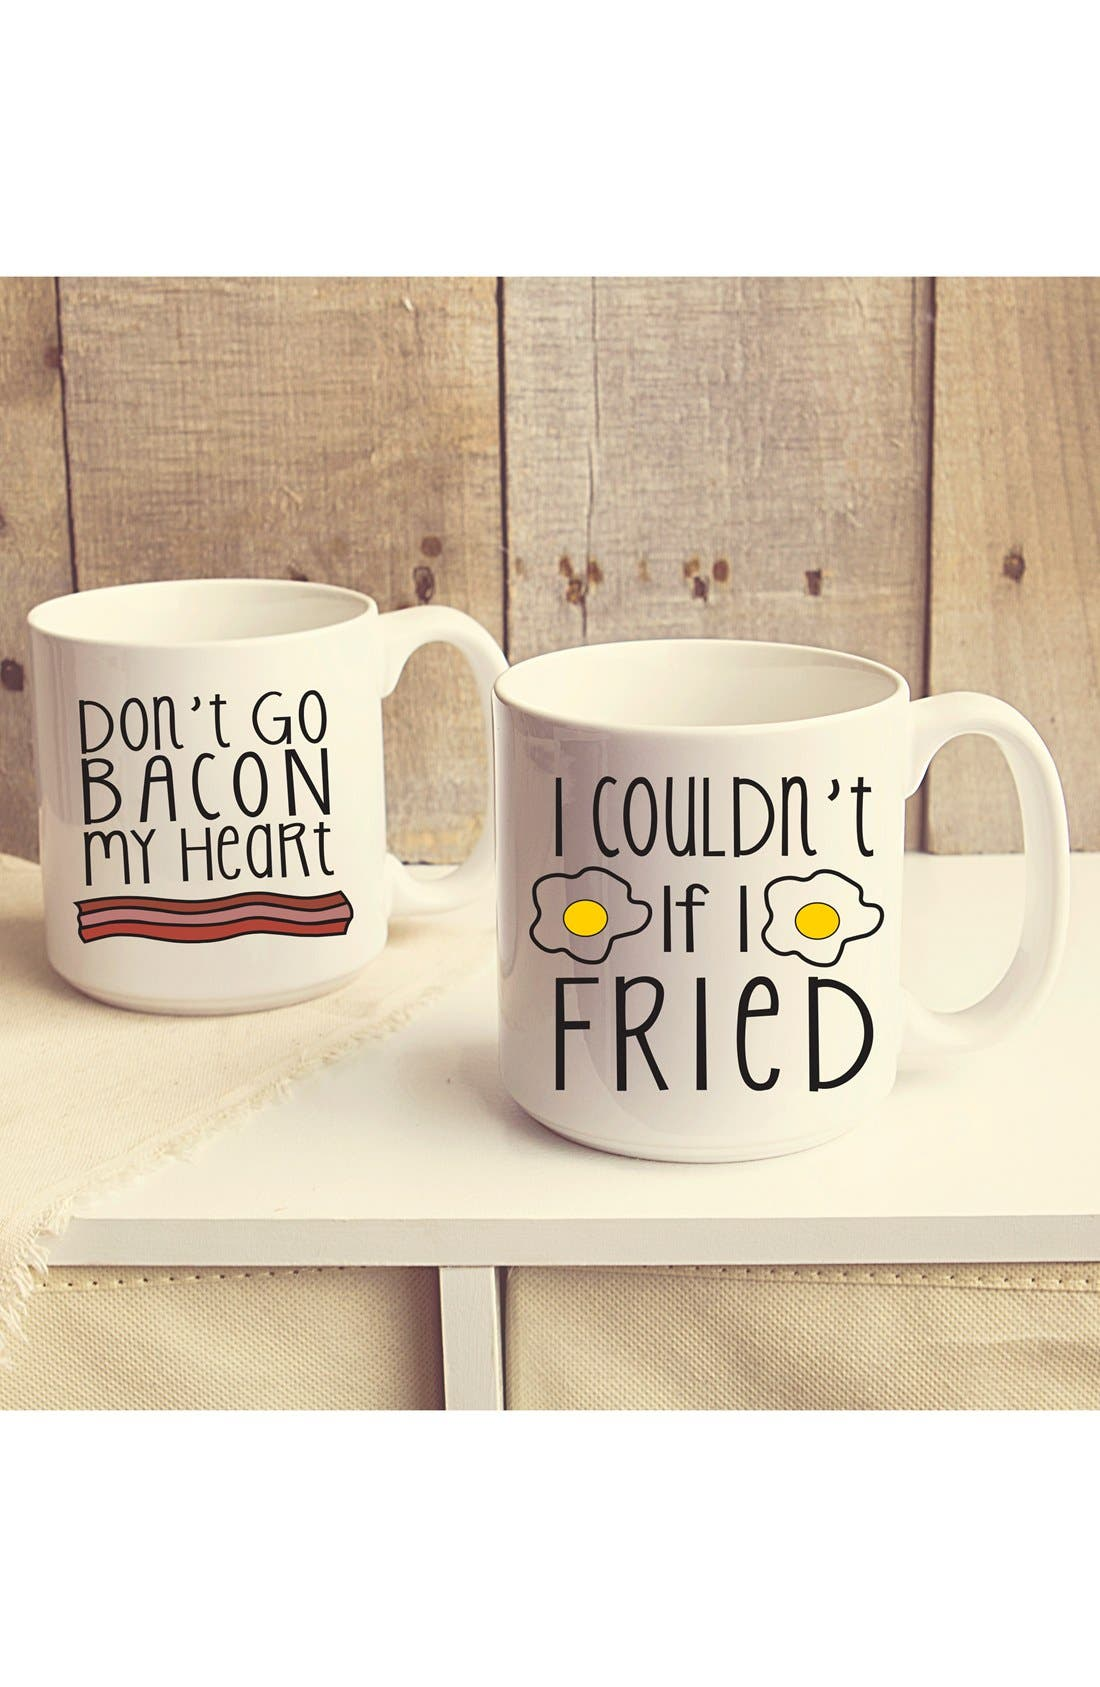 'Bacon & Eggs' Ceramic Coffee Mugs,                             Main thumbnail 1, color,                             White